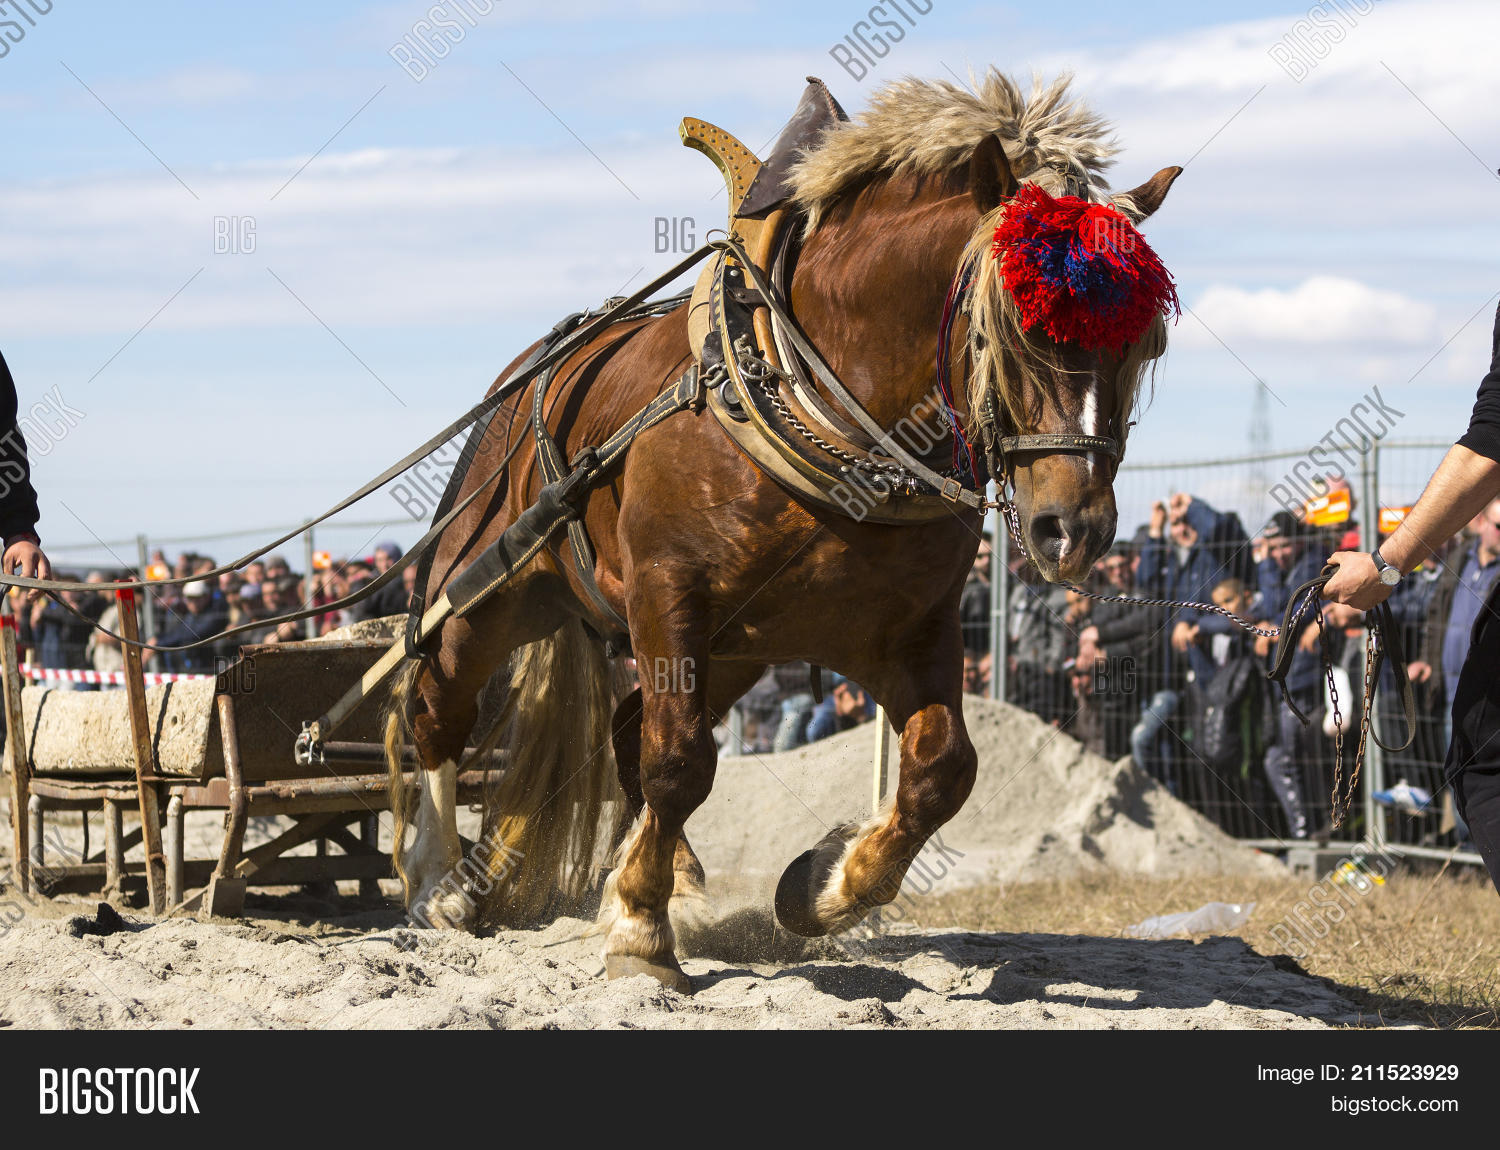 Gipsy,Gypsy,Rom,Romany,abuse,active,activity,animal,big,blue,compete,competition,cultural,culture,drag,drawing,extreme,fast,hard,heavy,horse,load,man,men,owner,participate,person,pull,pulling,race,run,running,rural,sand,scene,sky,speed,sport,stones,strenght,strong,strongerst,tournament.,track,tradition,traitional